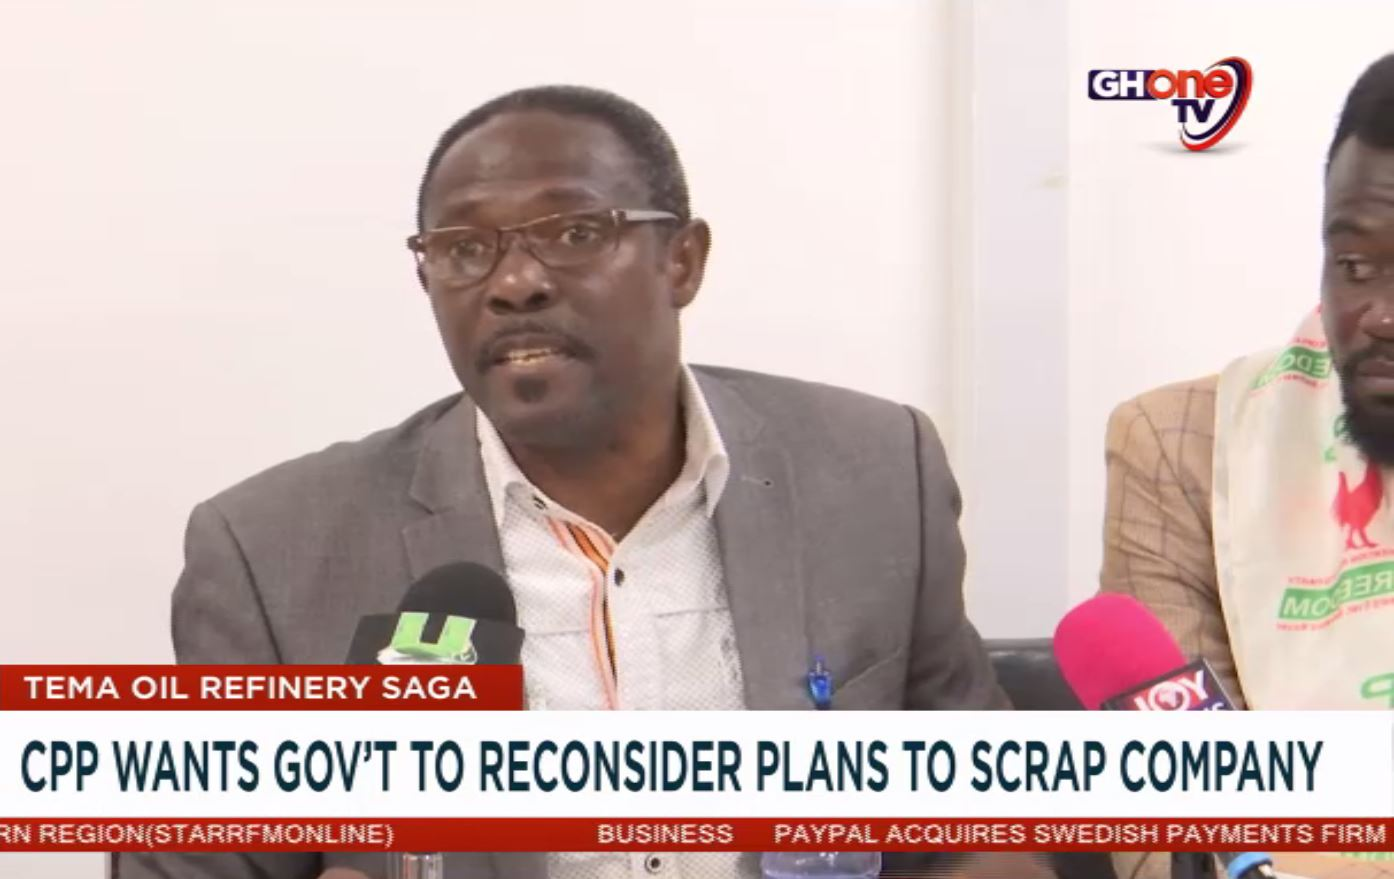 TEMA OIL REFINERY SAGA: CPP WANTS GOVERNMENT TO RECONSIDER PLANS TO SCRAP COMPANY.